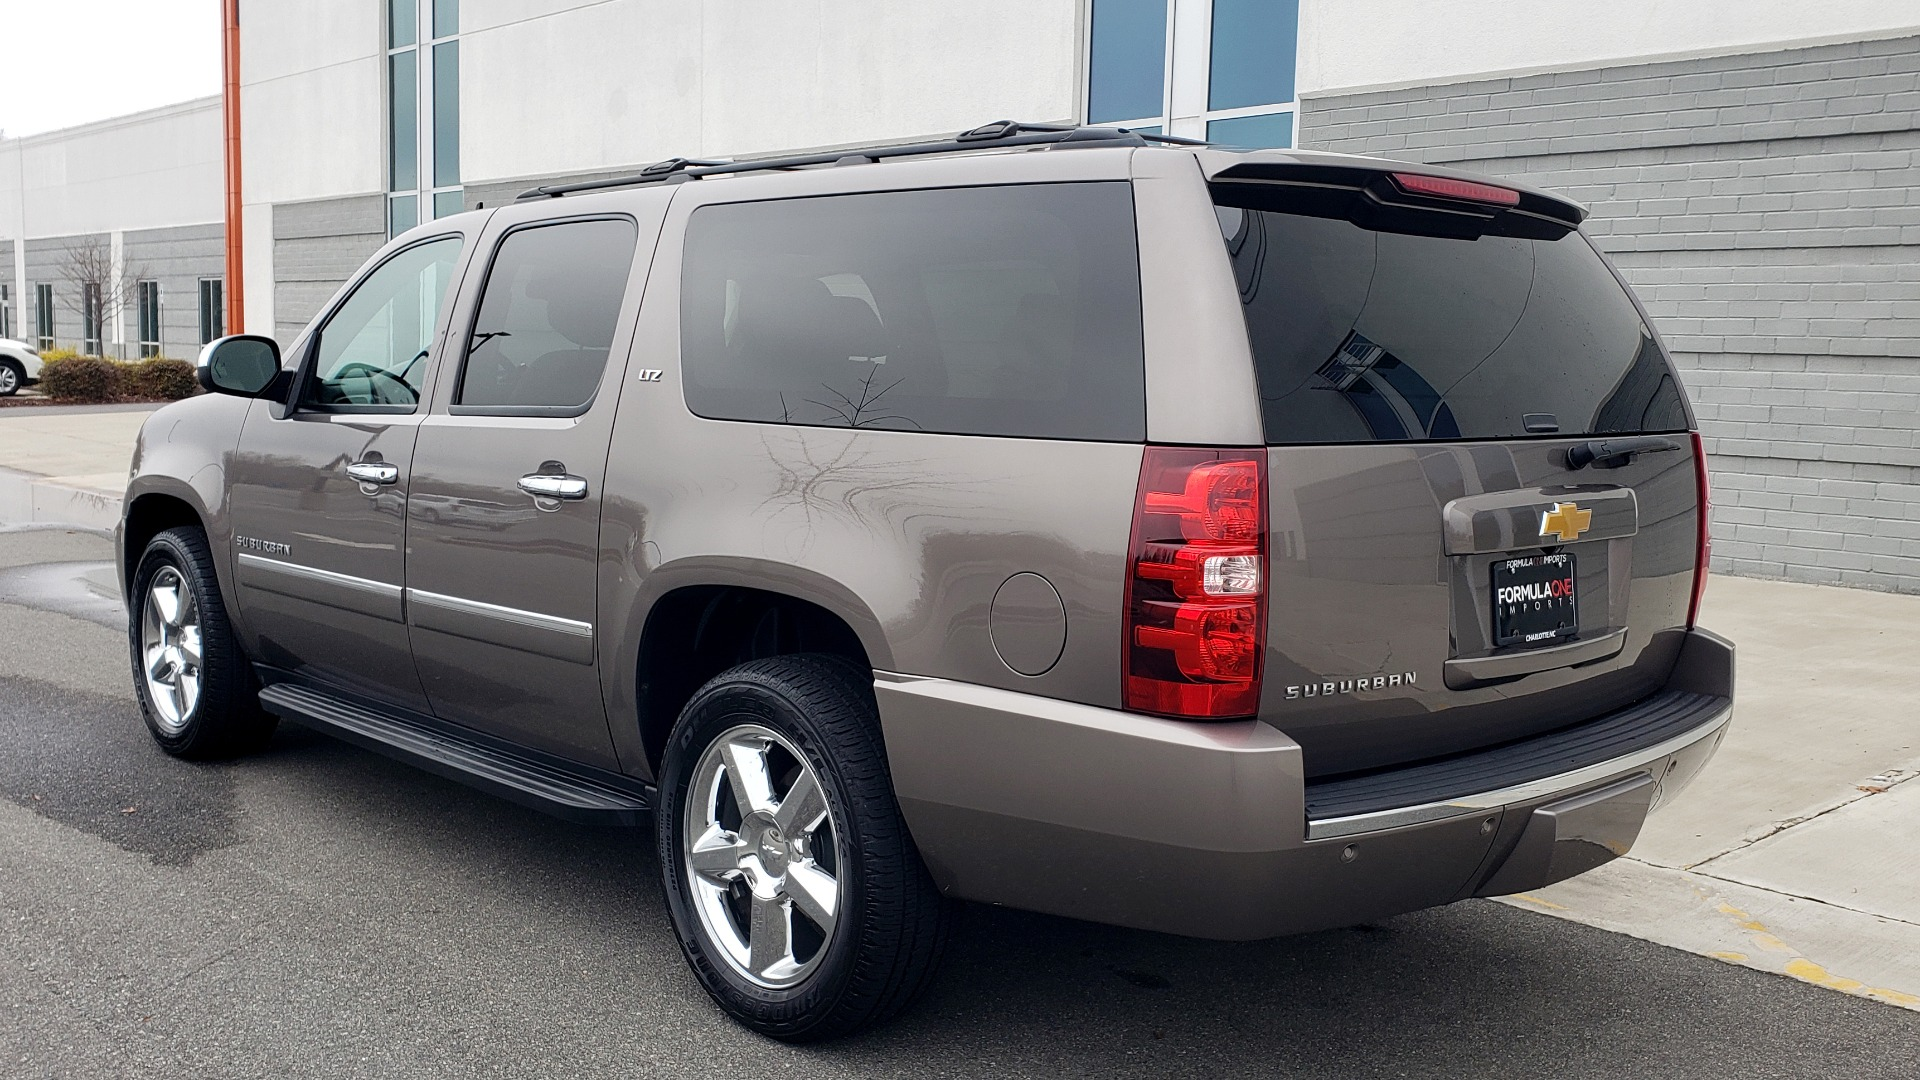 Used 2014 Chevrolet SUBURBAN LTZ / 4WD / ENTERTAINMENT / NAV / SUNROOF / TRAILER PKG for sale Sold at Formula Imports in Charlotte NC 28227 5